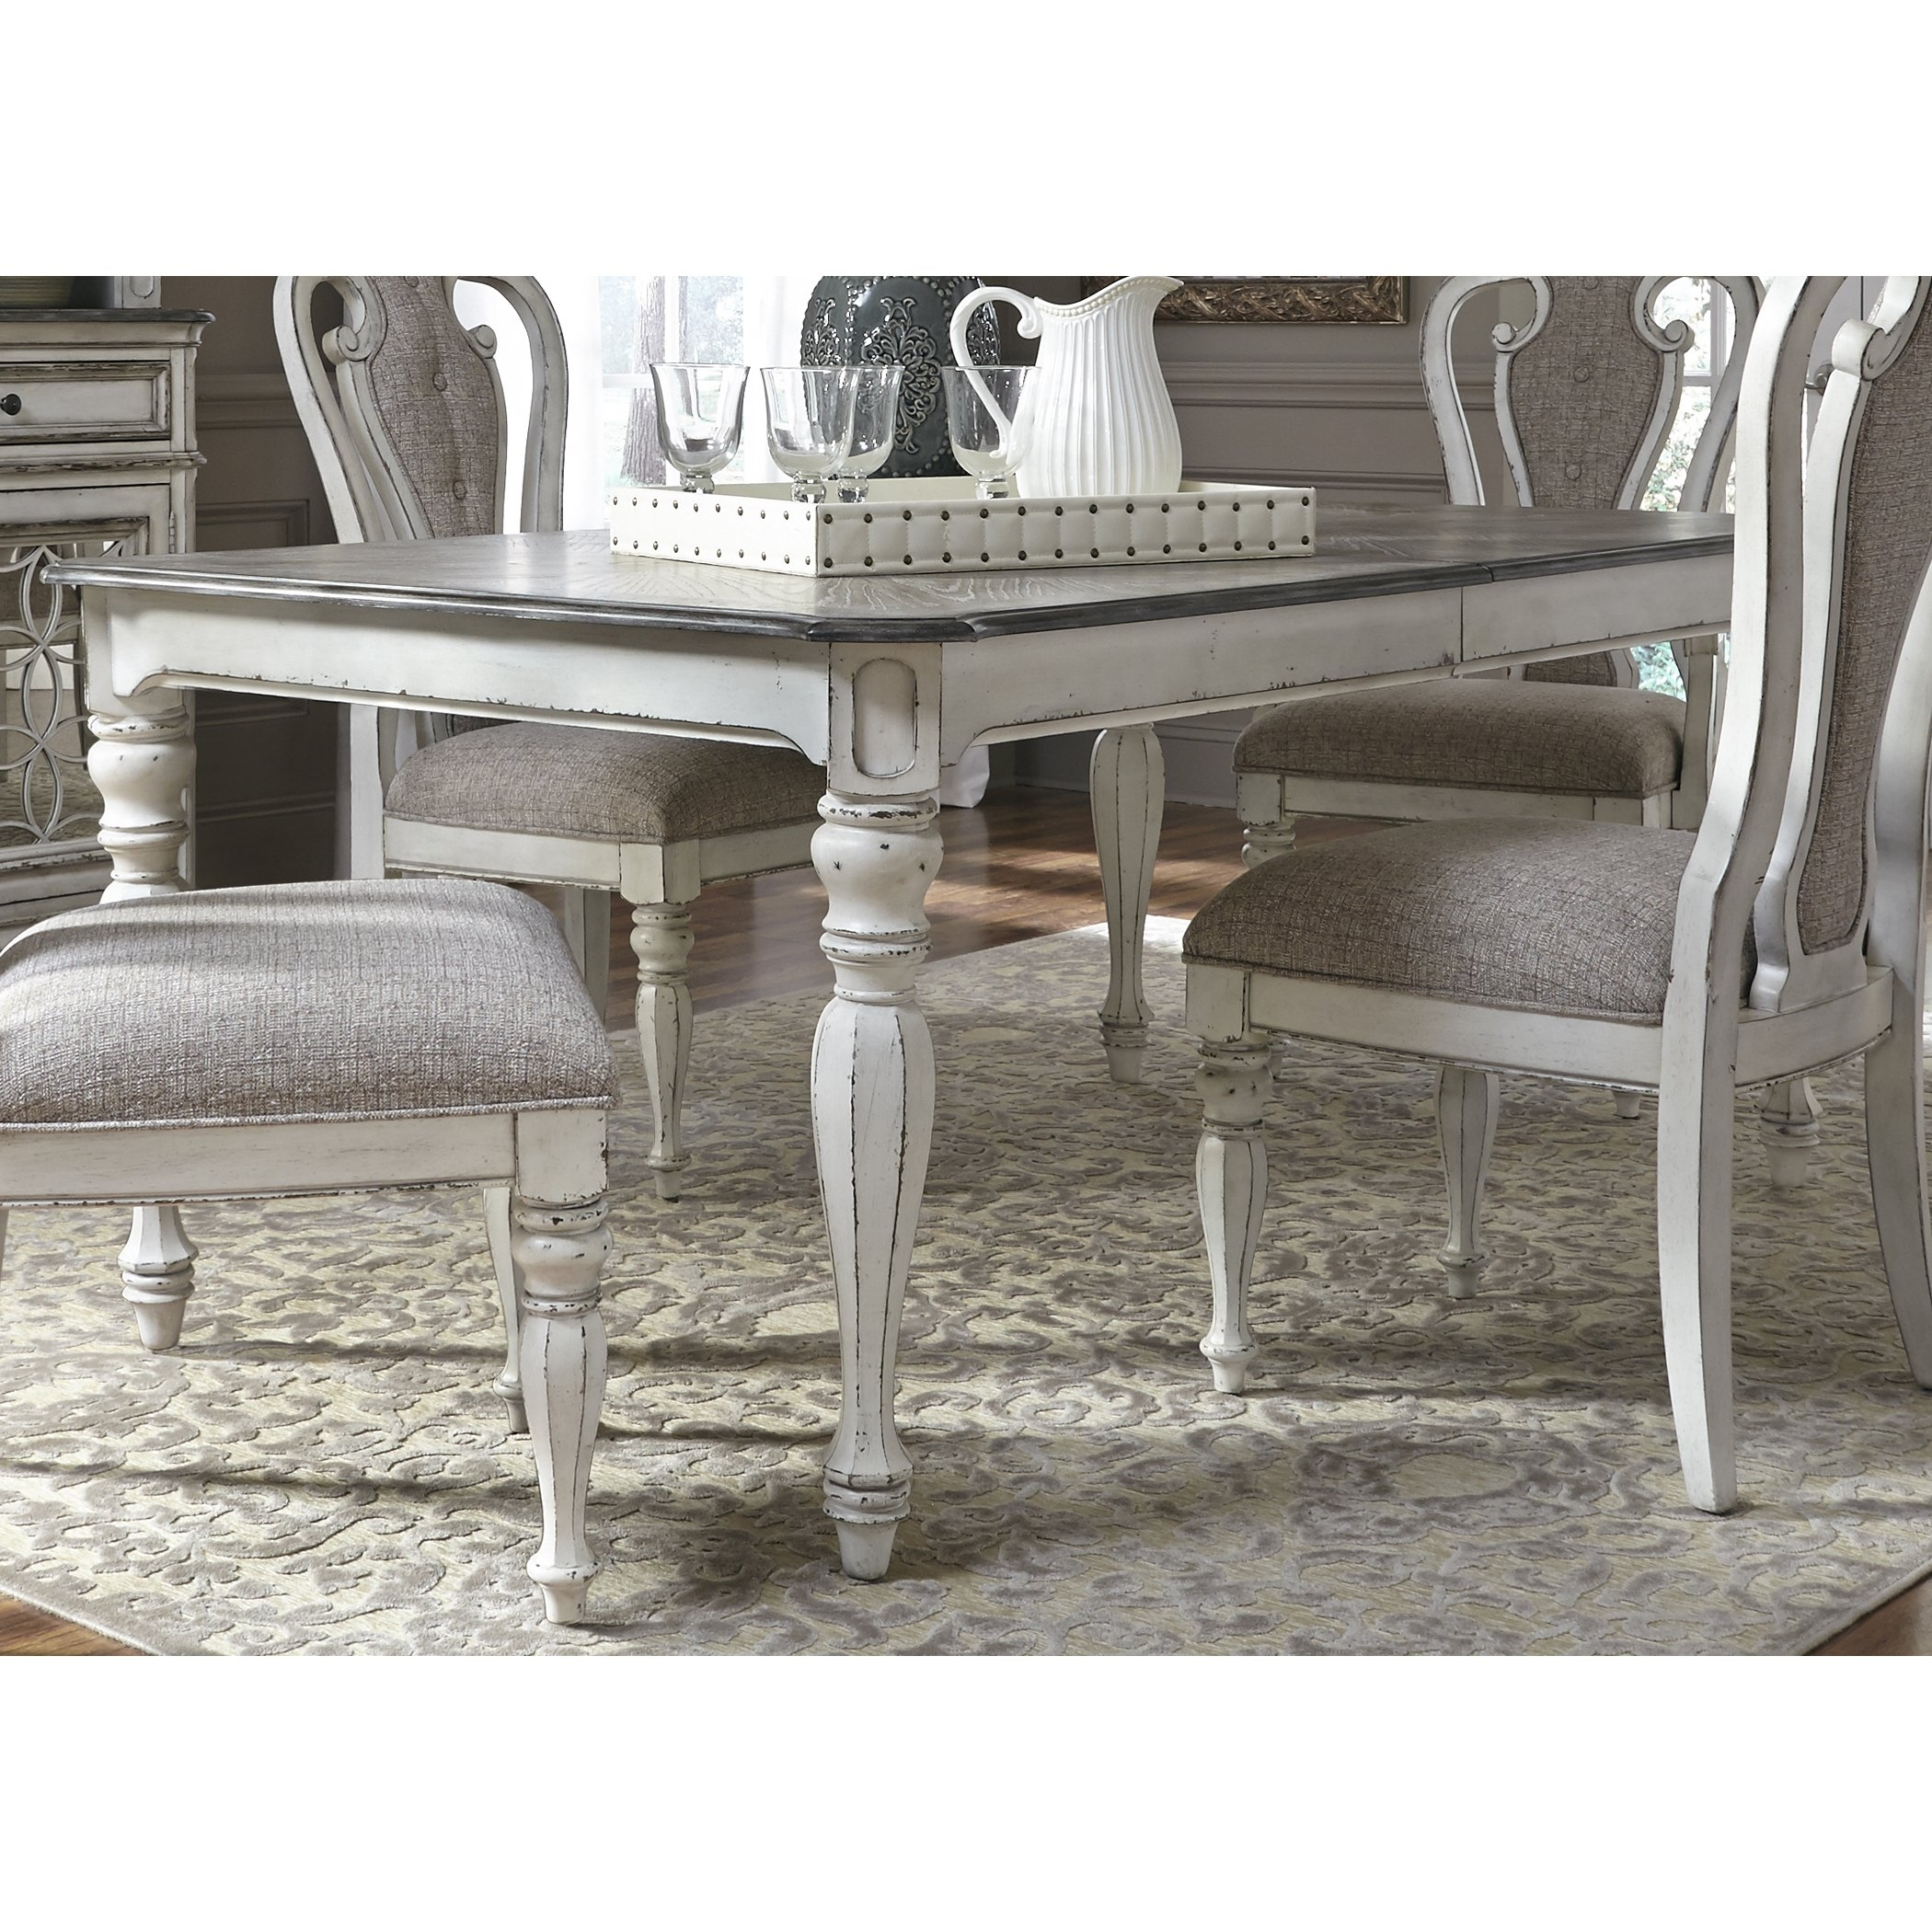 Magnolia Manor Antique White 44X108 Dinette Table – Antique White With Regard To Recent Magnolia Home Breakfast Round Black Dining Tables (Image 16 of 20)